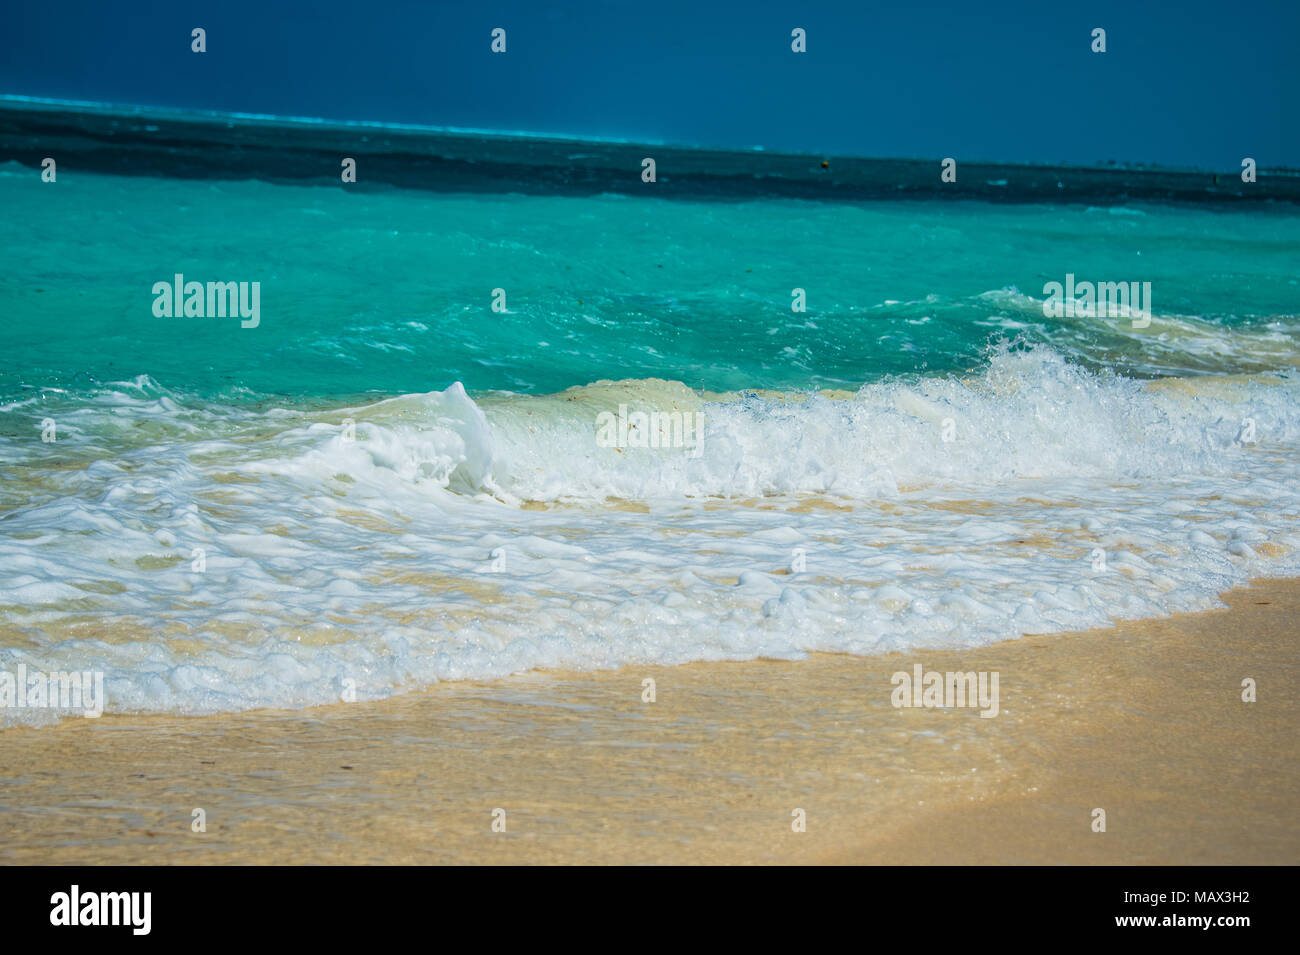 Gentle surf lapping at golden sand on an idyllic tropical beach in the Turks and Caicos Islands, Caribbean, North America - Stock Image